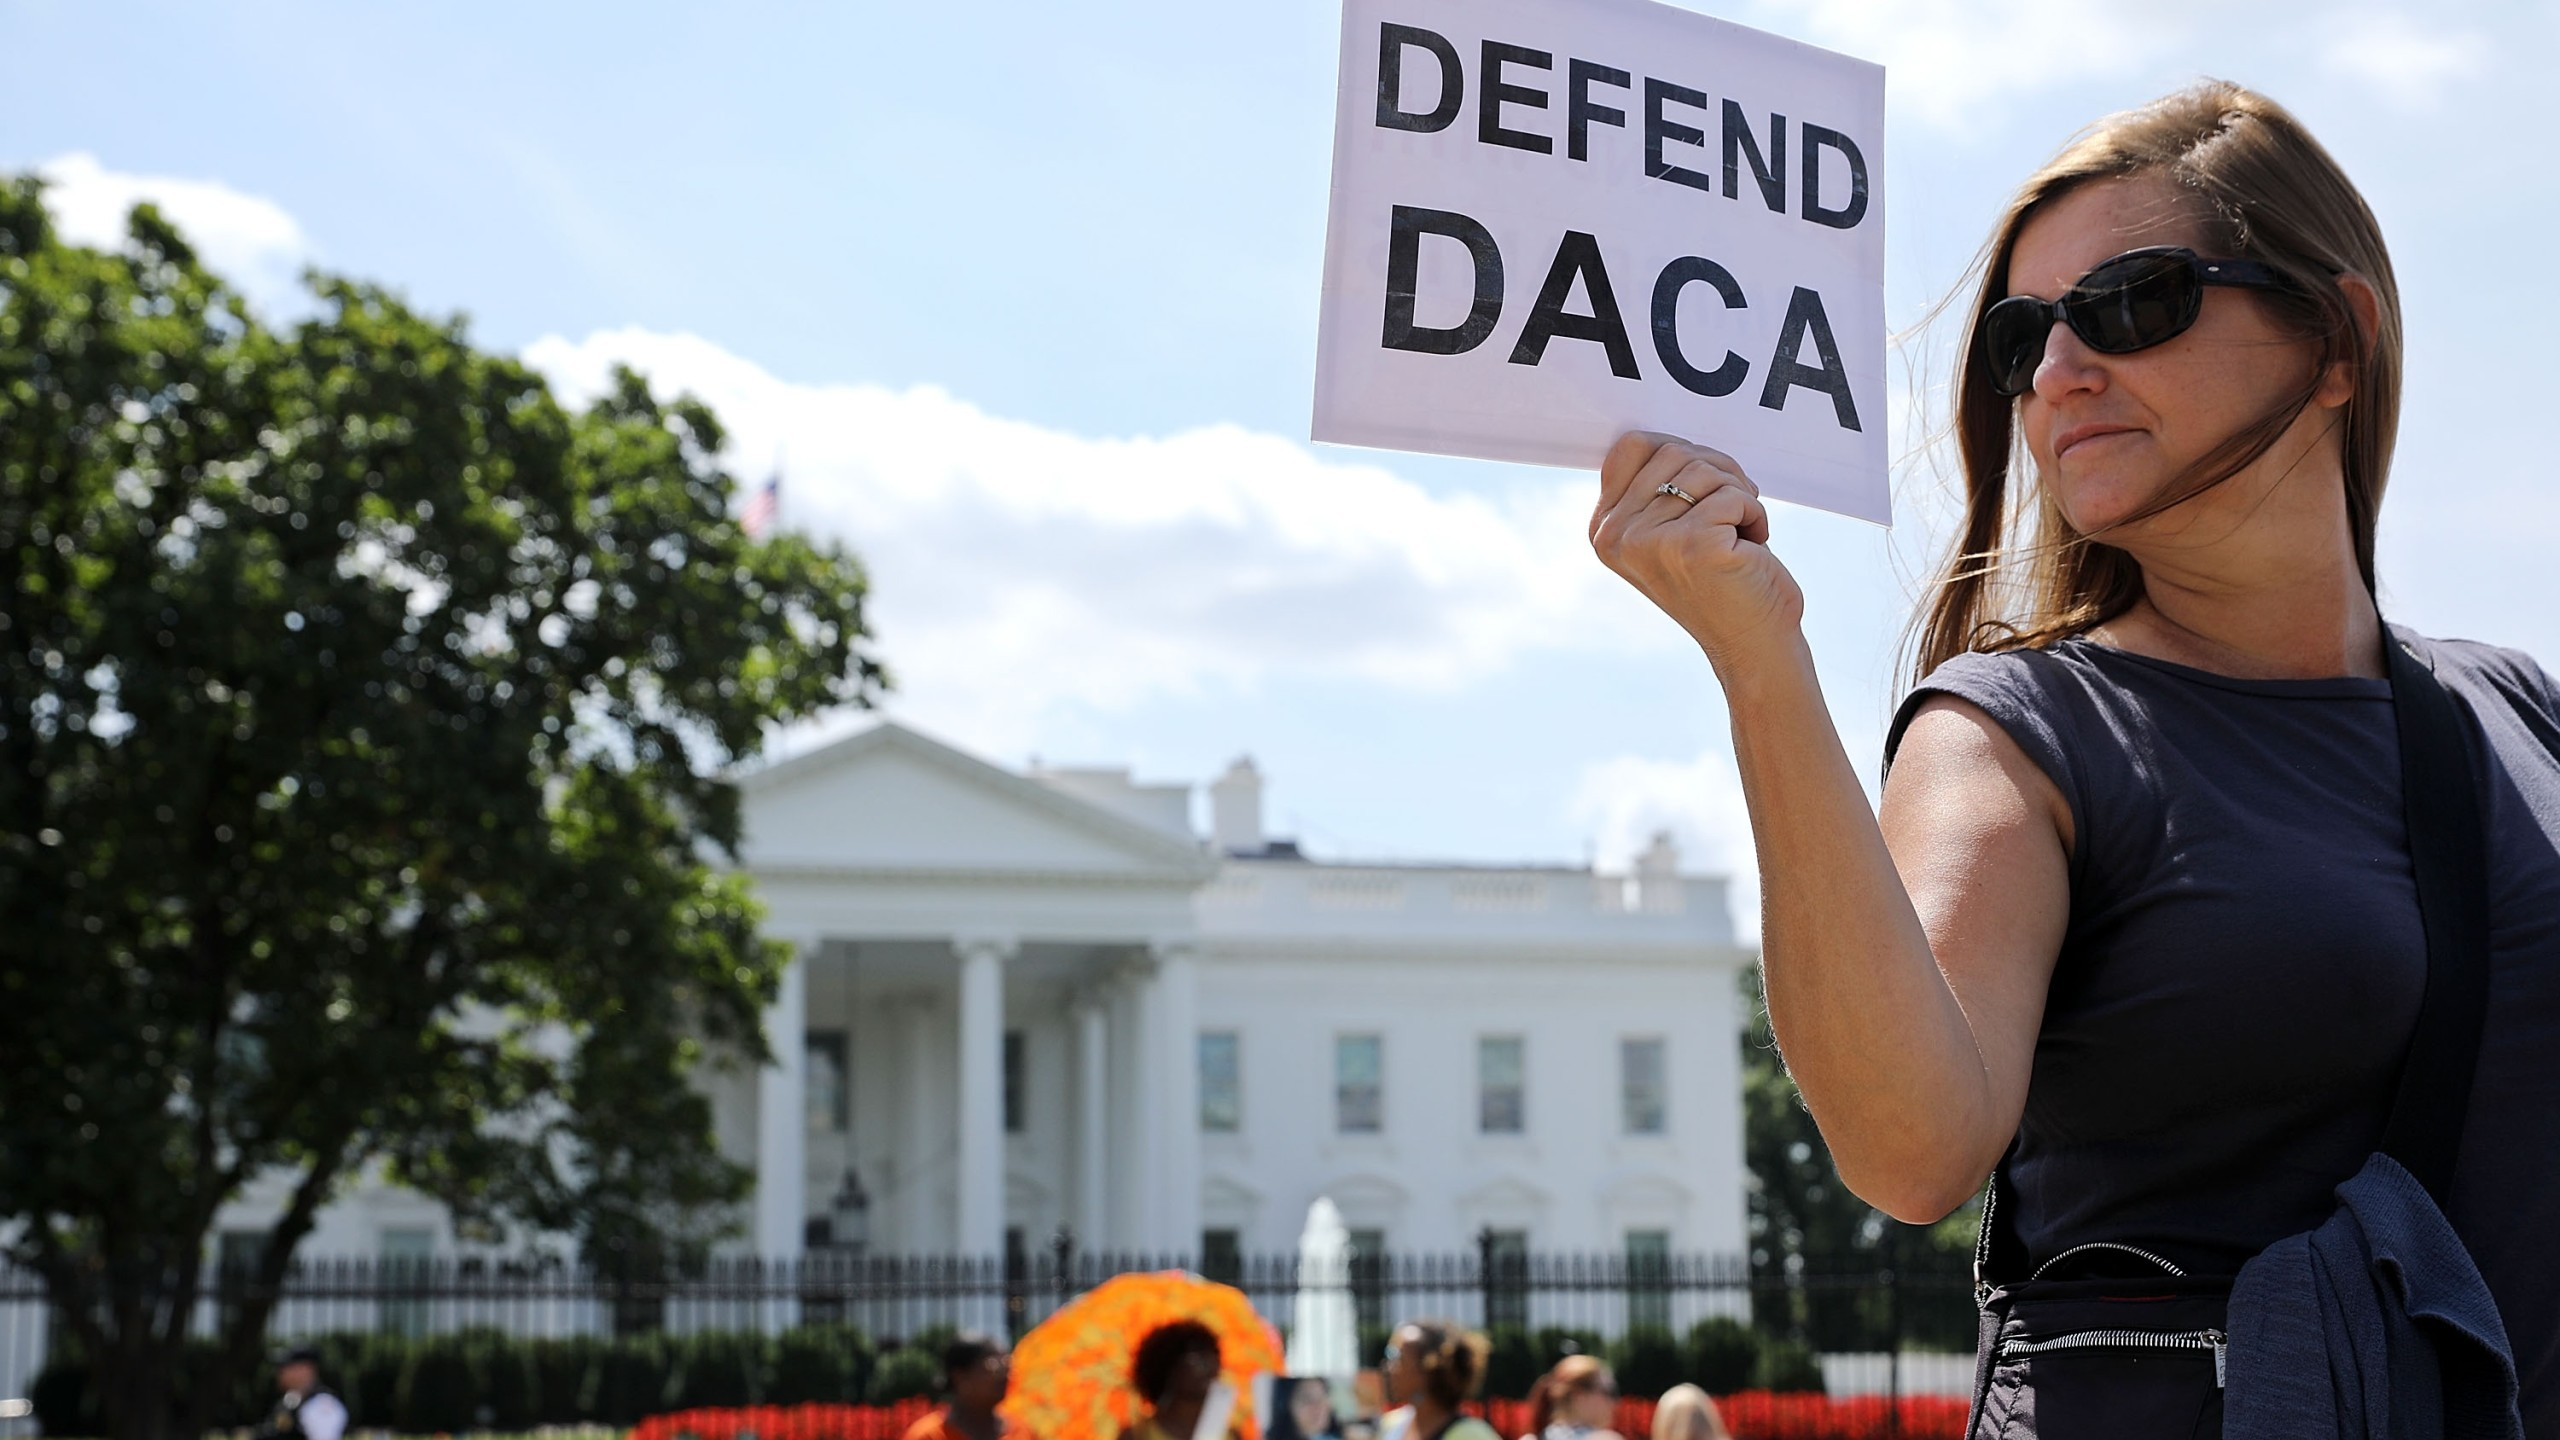 Protestors rally against the end of DACA, outside the White House, on Aug. 30, 2017. (Credit: Chip Somodevilla/Getty Images)